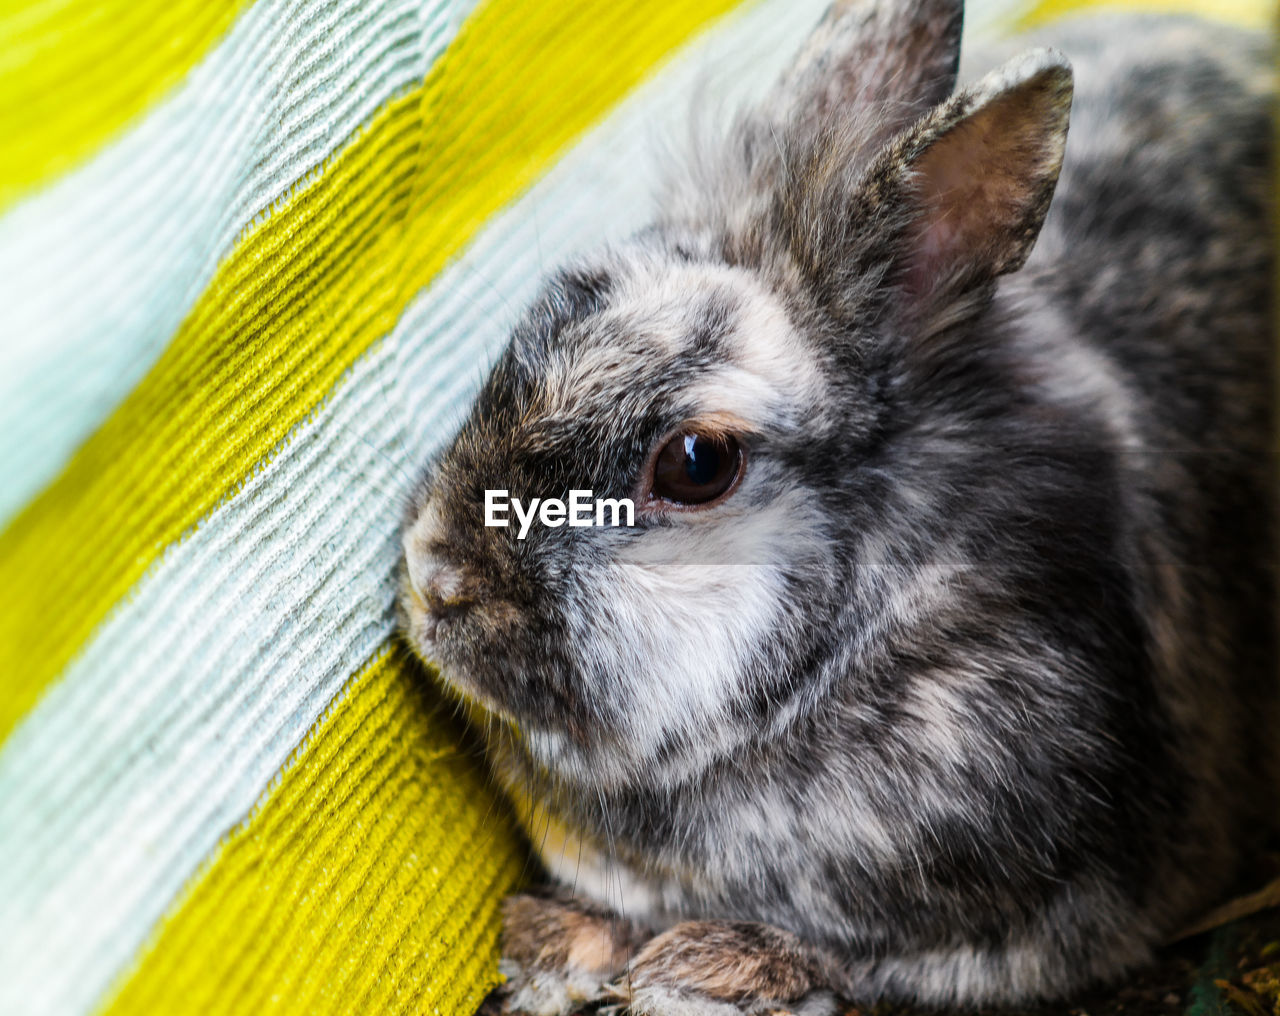 one animal, animal, animal themes, mammal, close-up, domestic, vertebrate, pets, animal wildlife, no people, domestic animals, rodent, yellow, focus on foreground, young animal, portrait, day, looking at camera, cute, rabbit, animal head, whisker